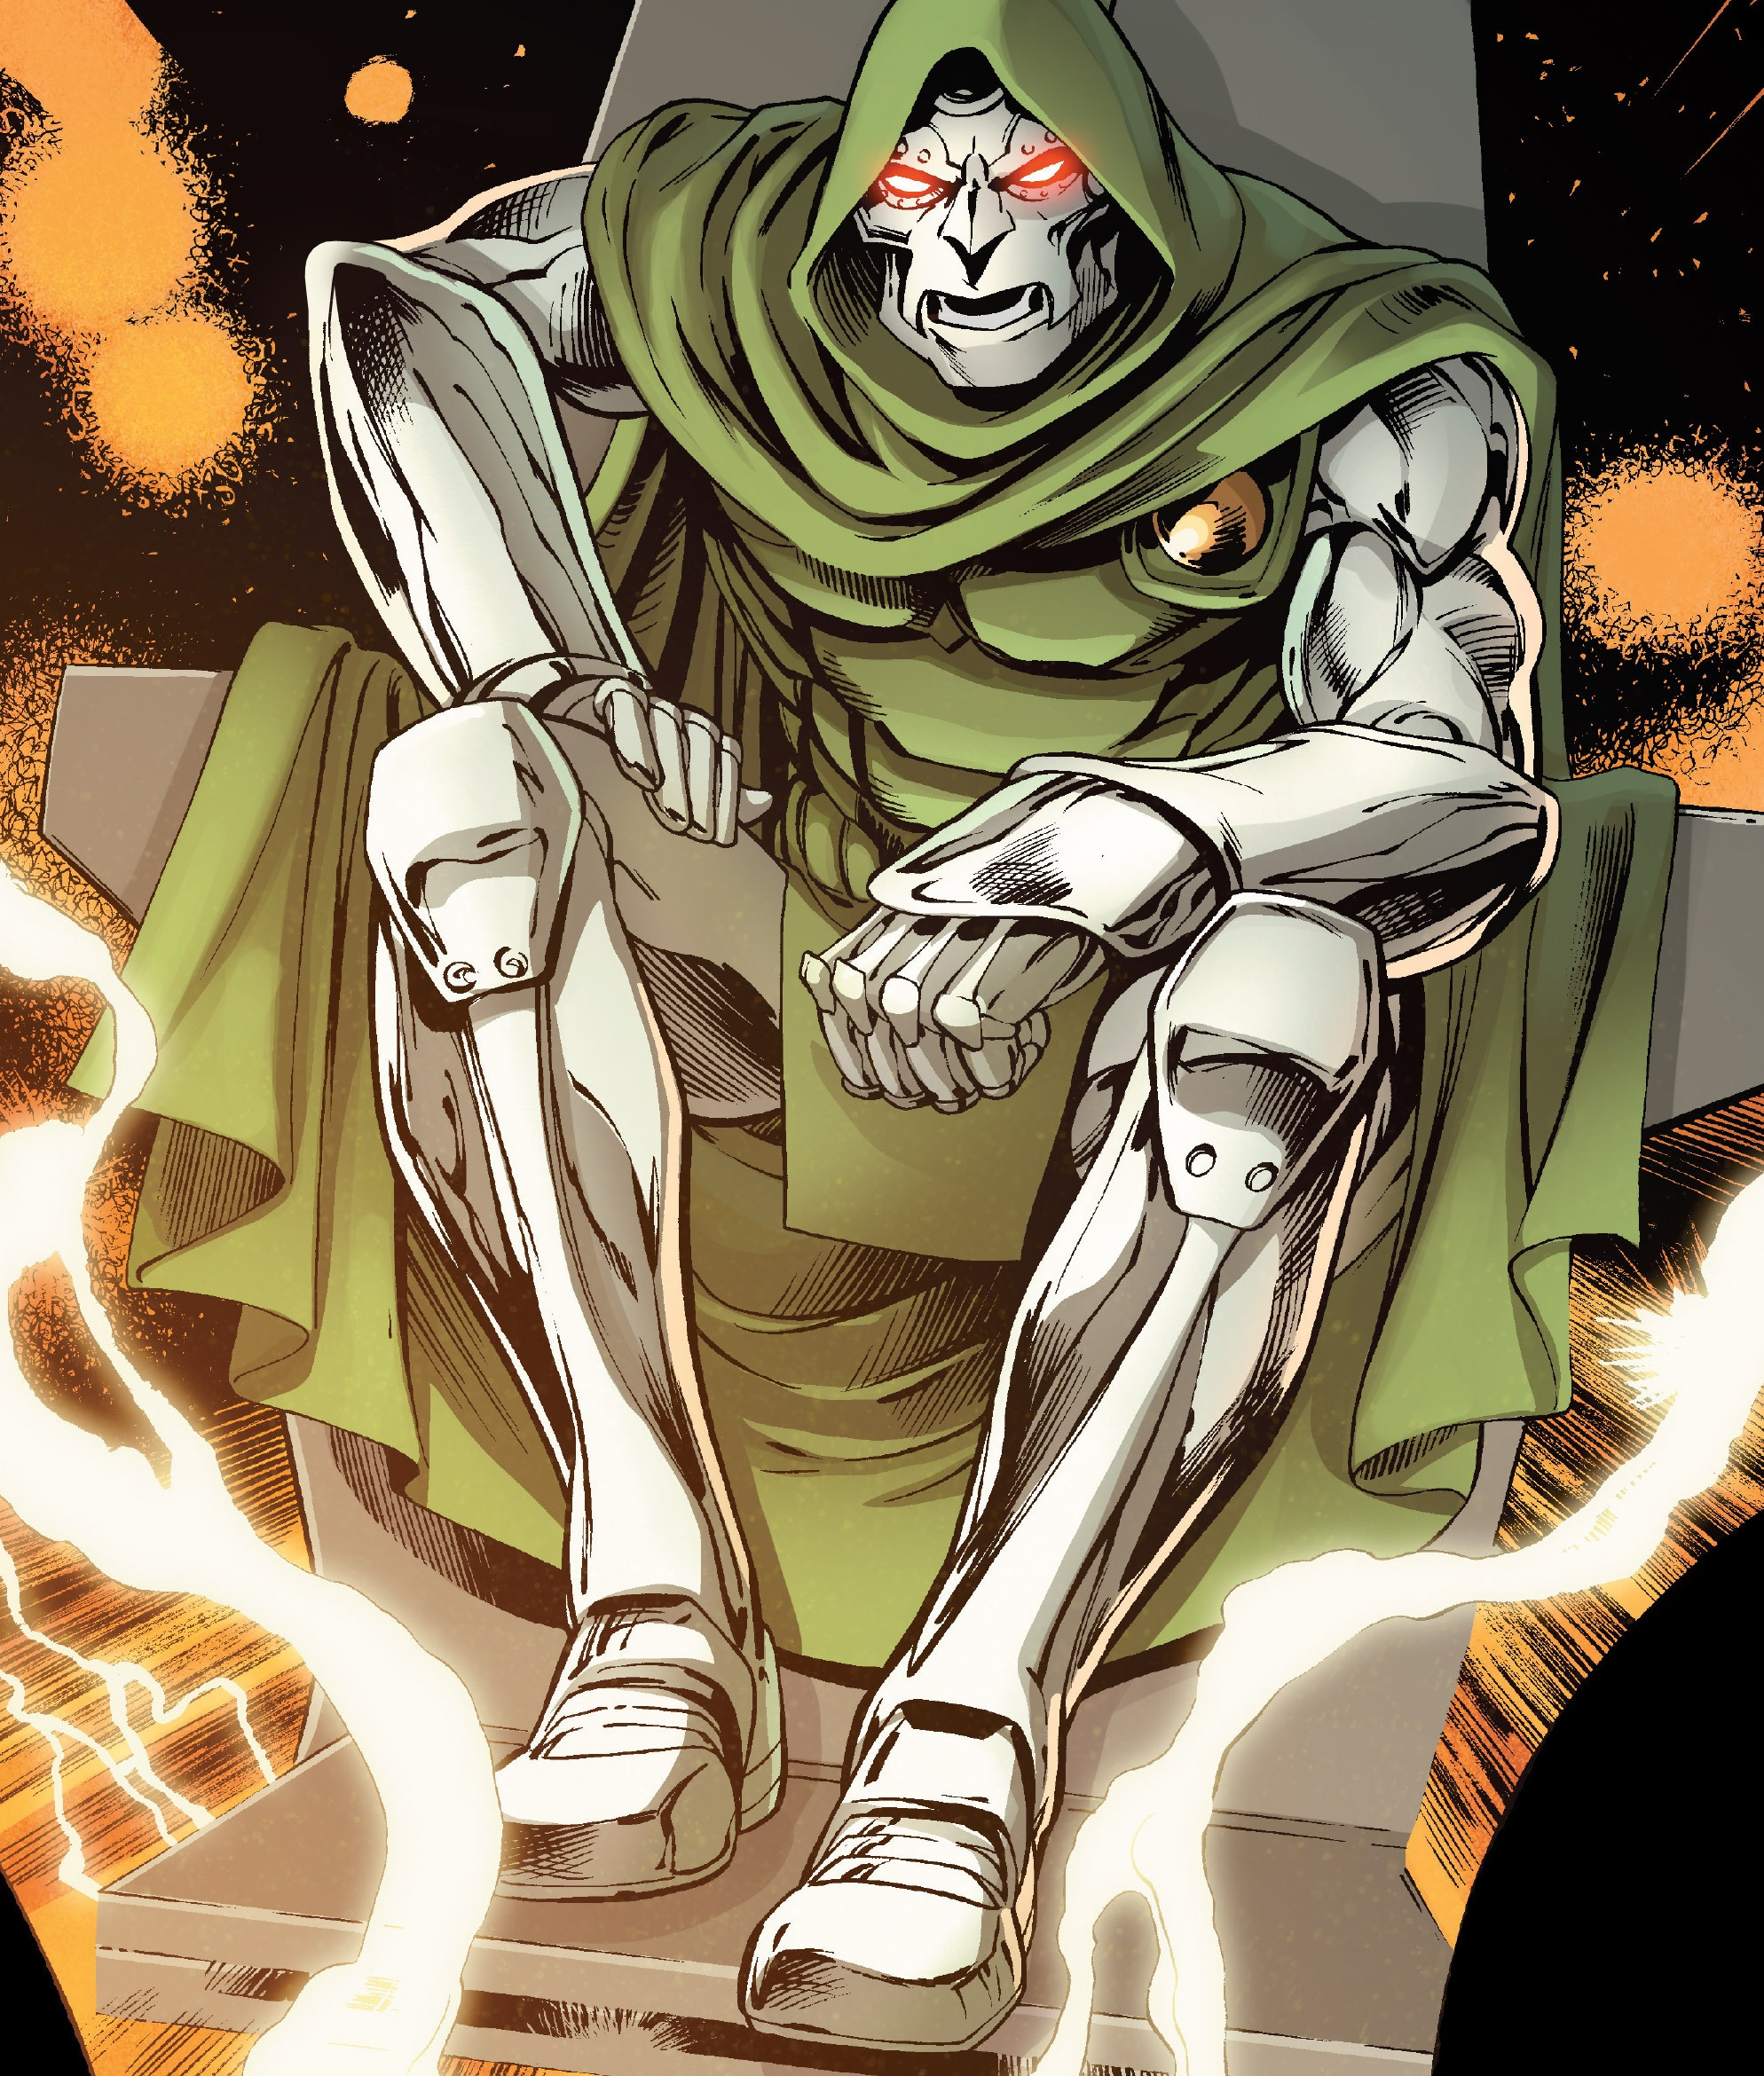 Doombot (Avenger) (Earth-14831)